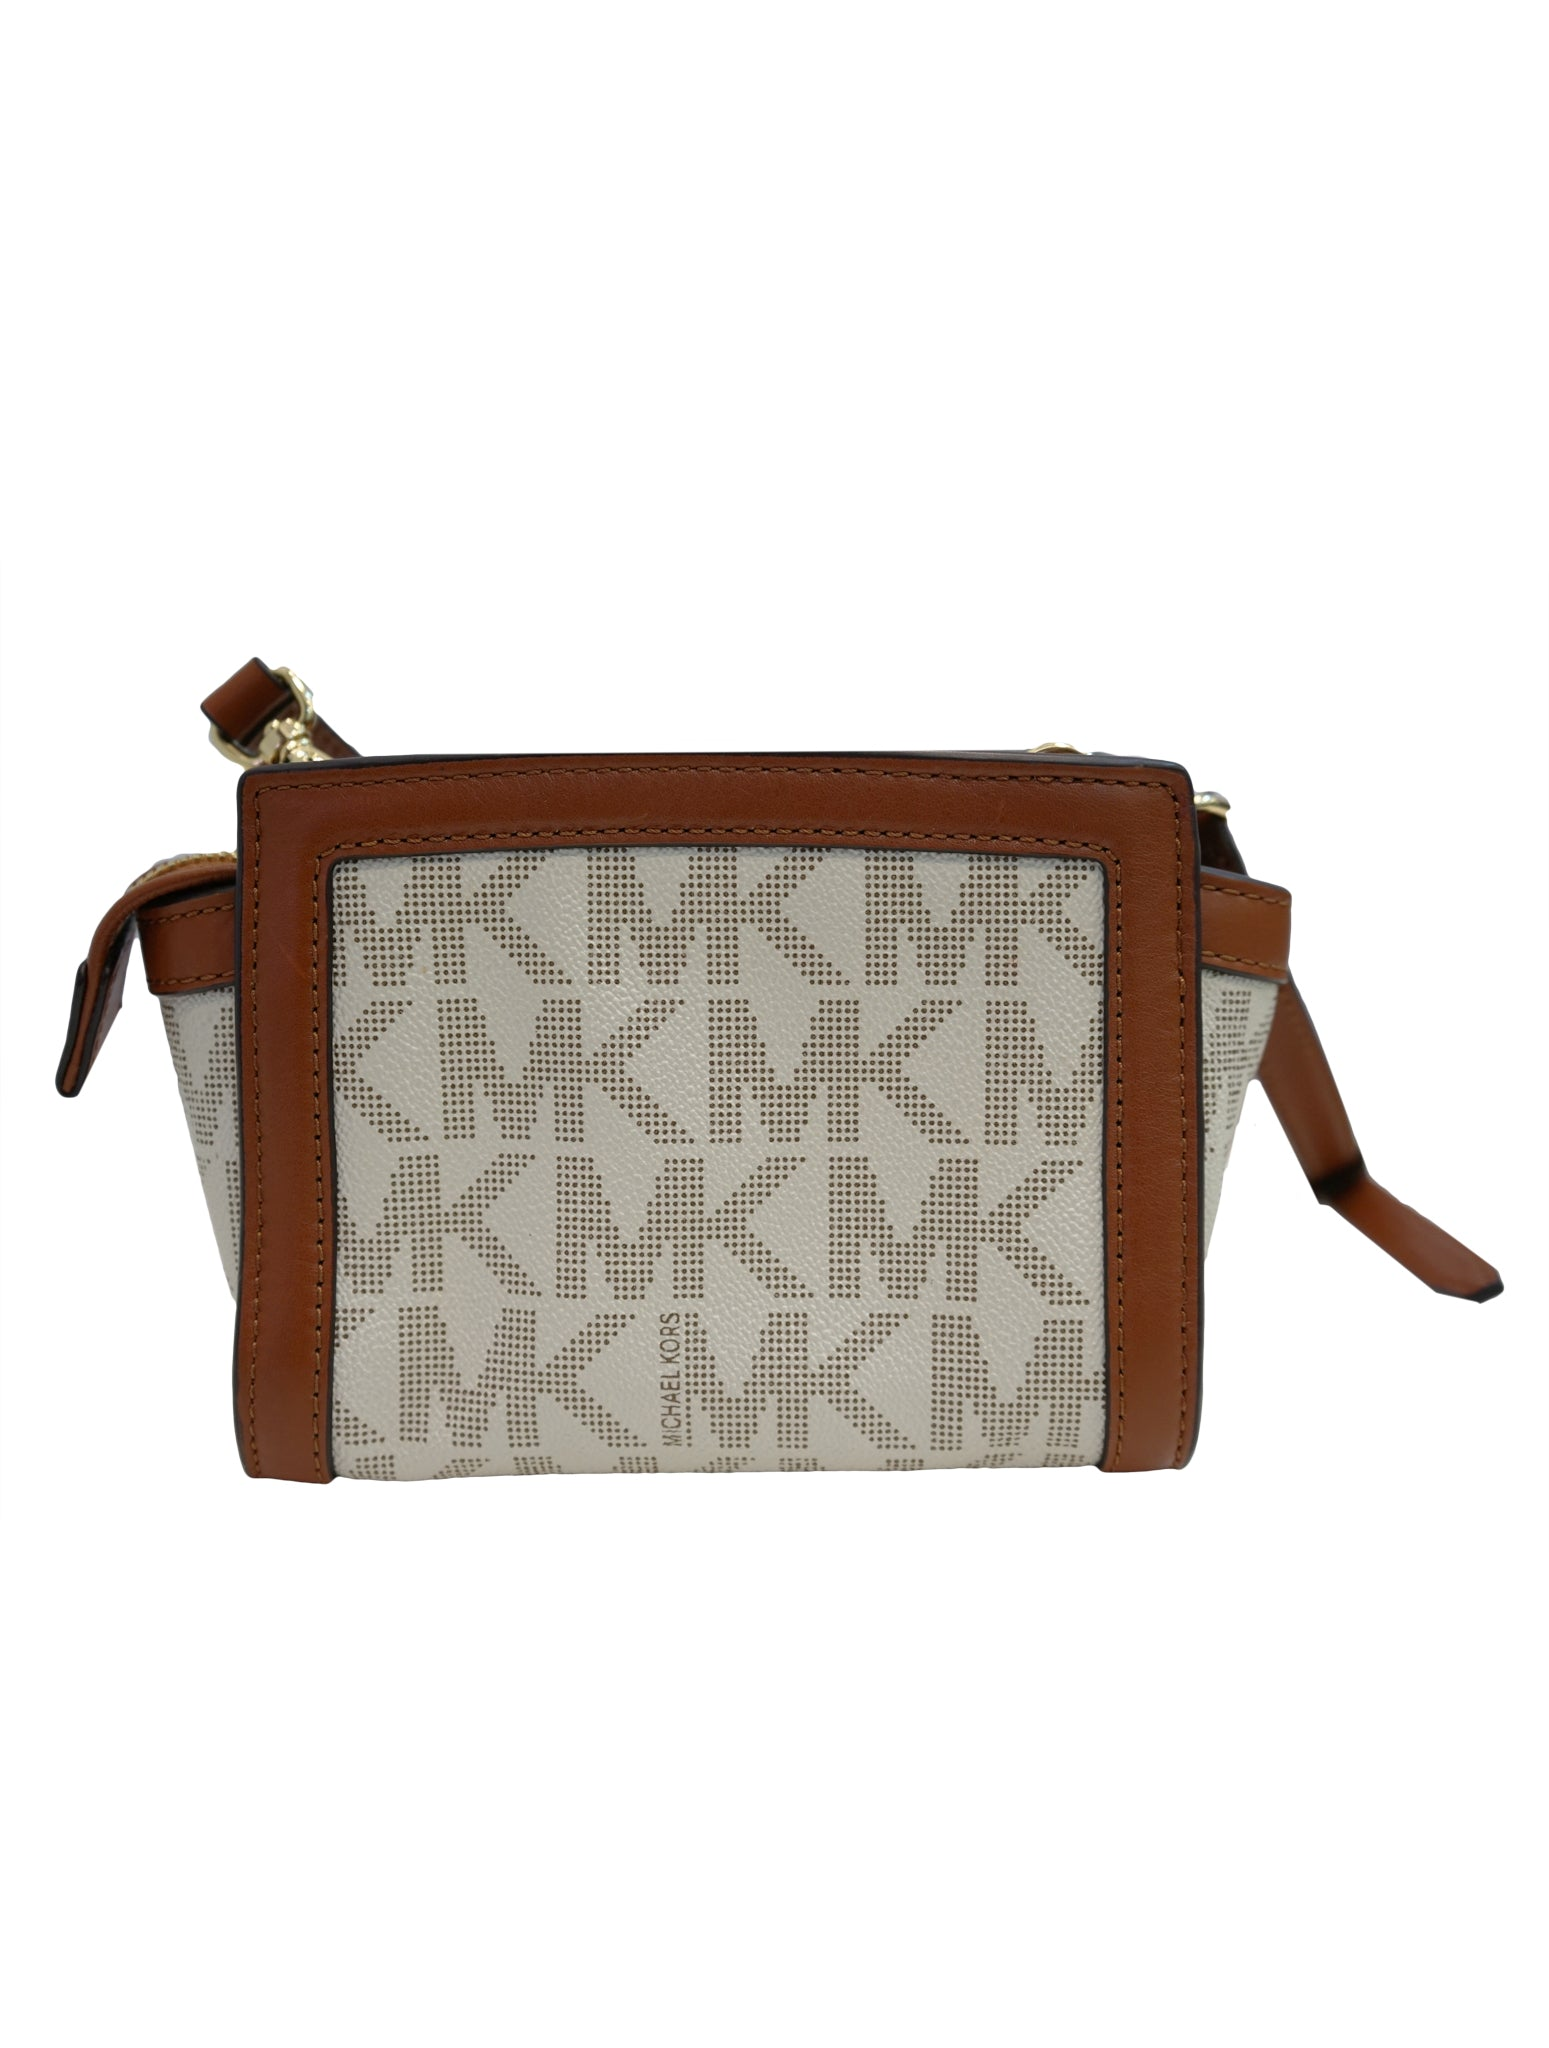 DILLION MONOGRAM CROSSBODY BAG